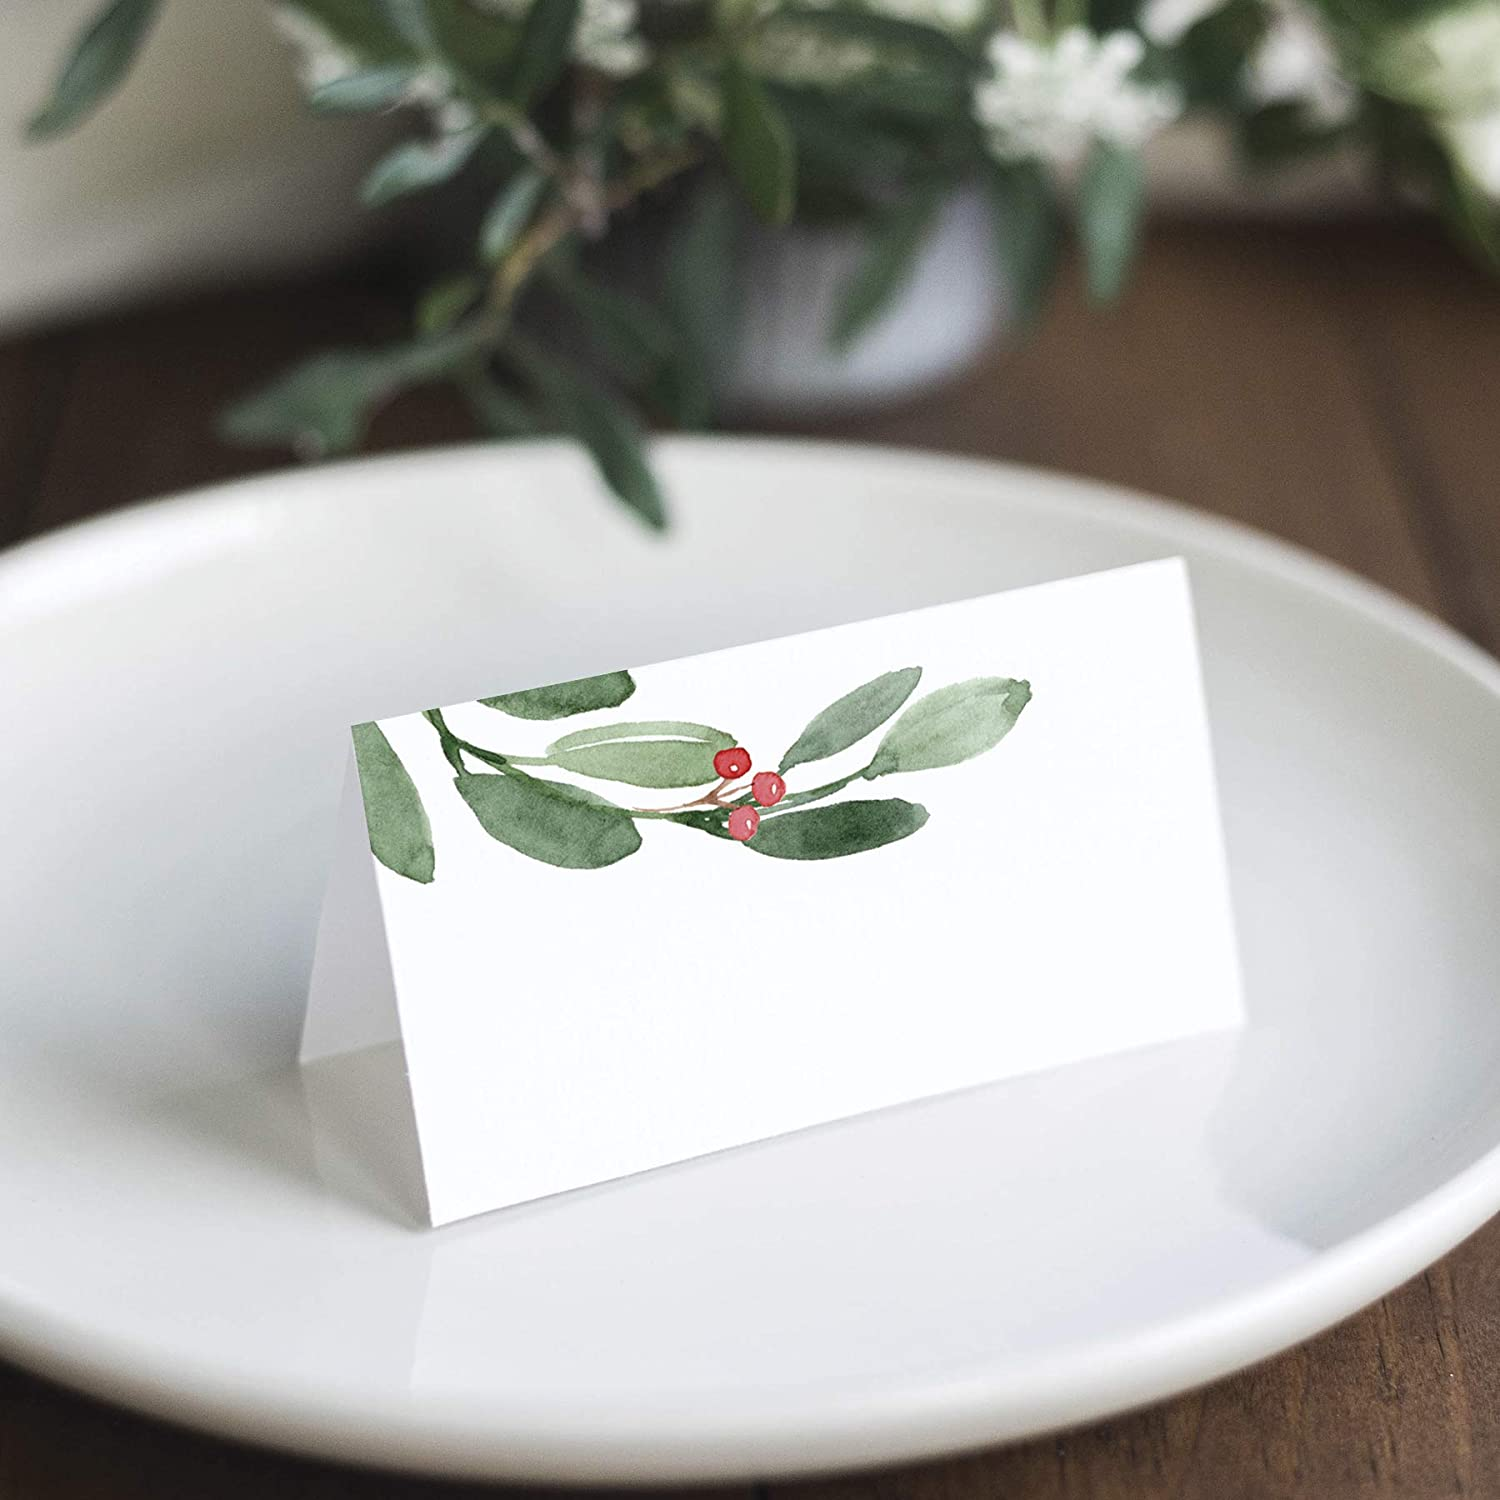 Bliss Collections Greenery Holiday Place Cards for Christmas Party, Wedding or special winter event! Seating Place Cards for Tables, Scored for Easy Folding, 50 Pack, 2 x 3.5 Inches: Kitchen & Dining